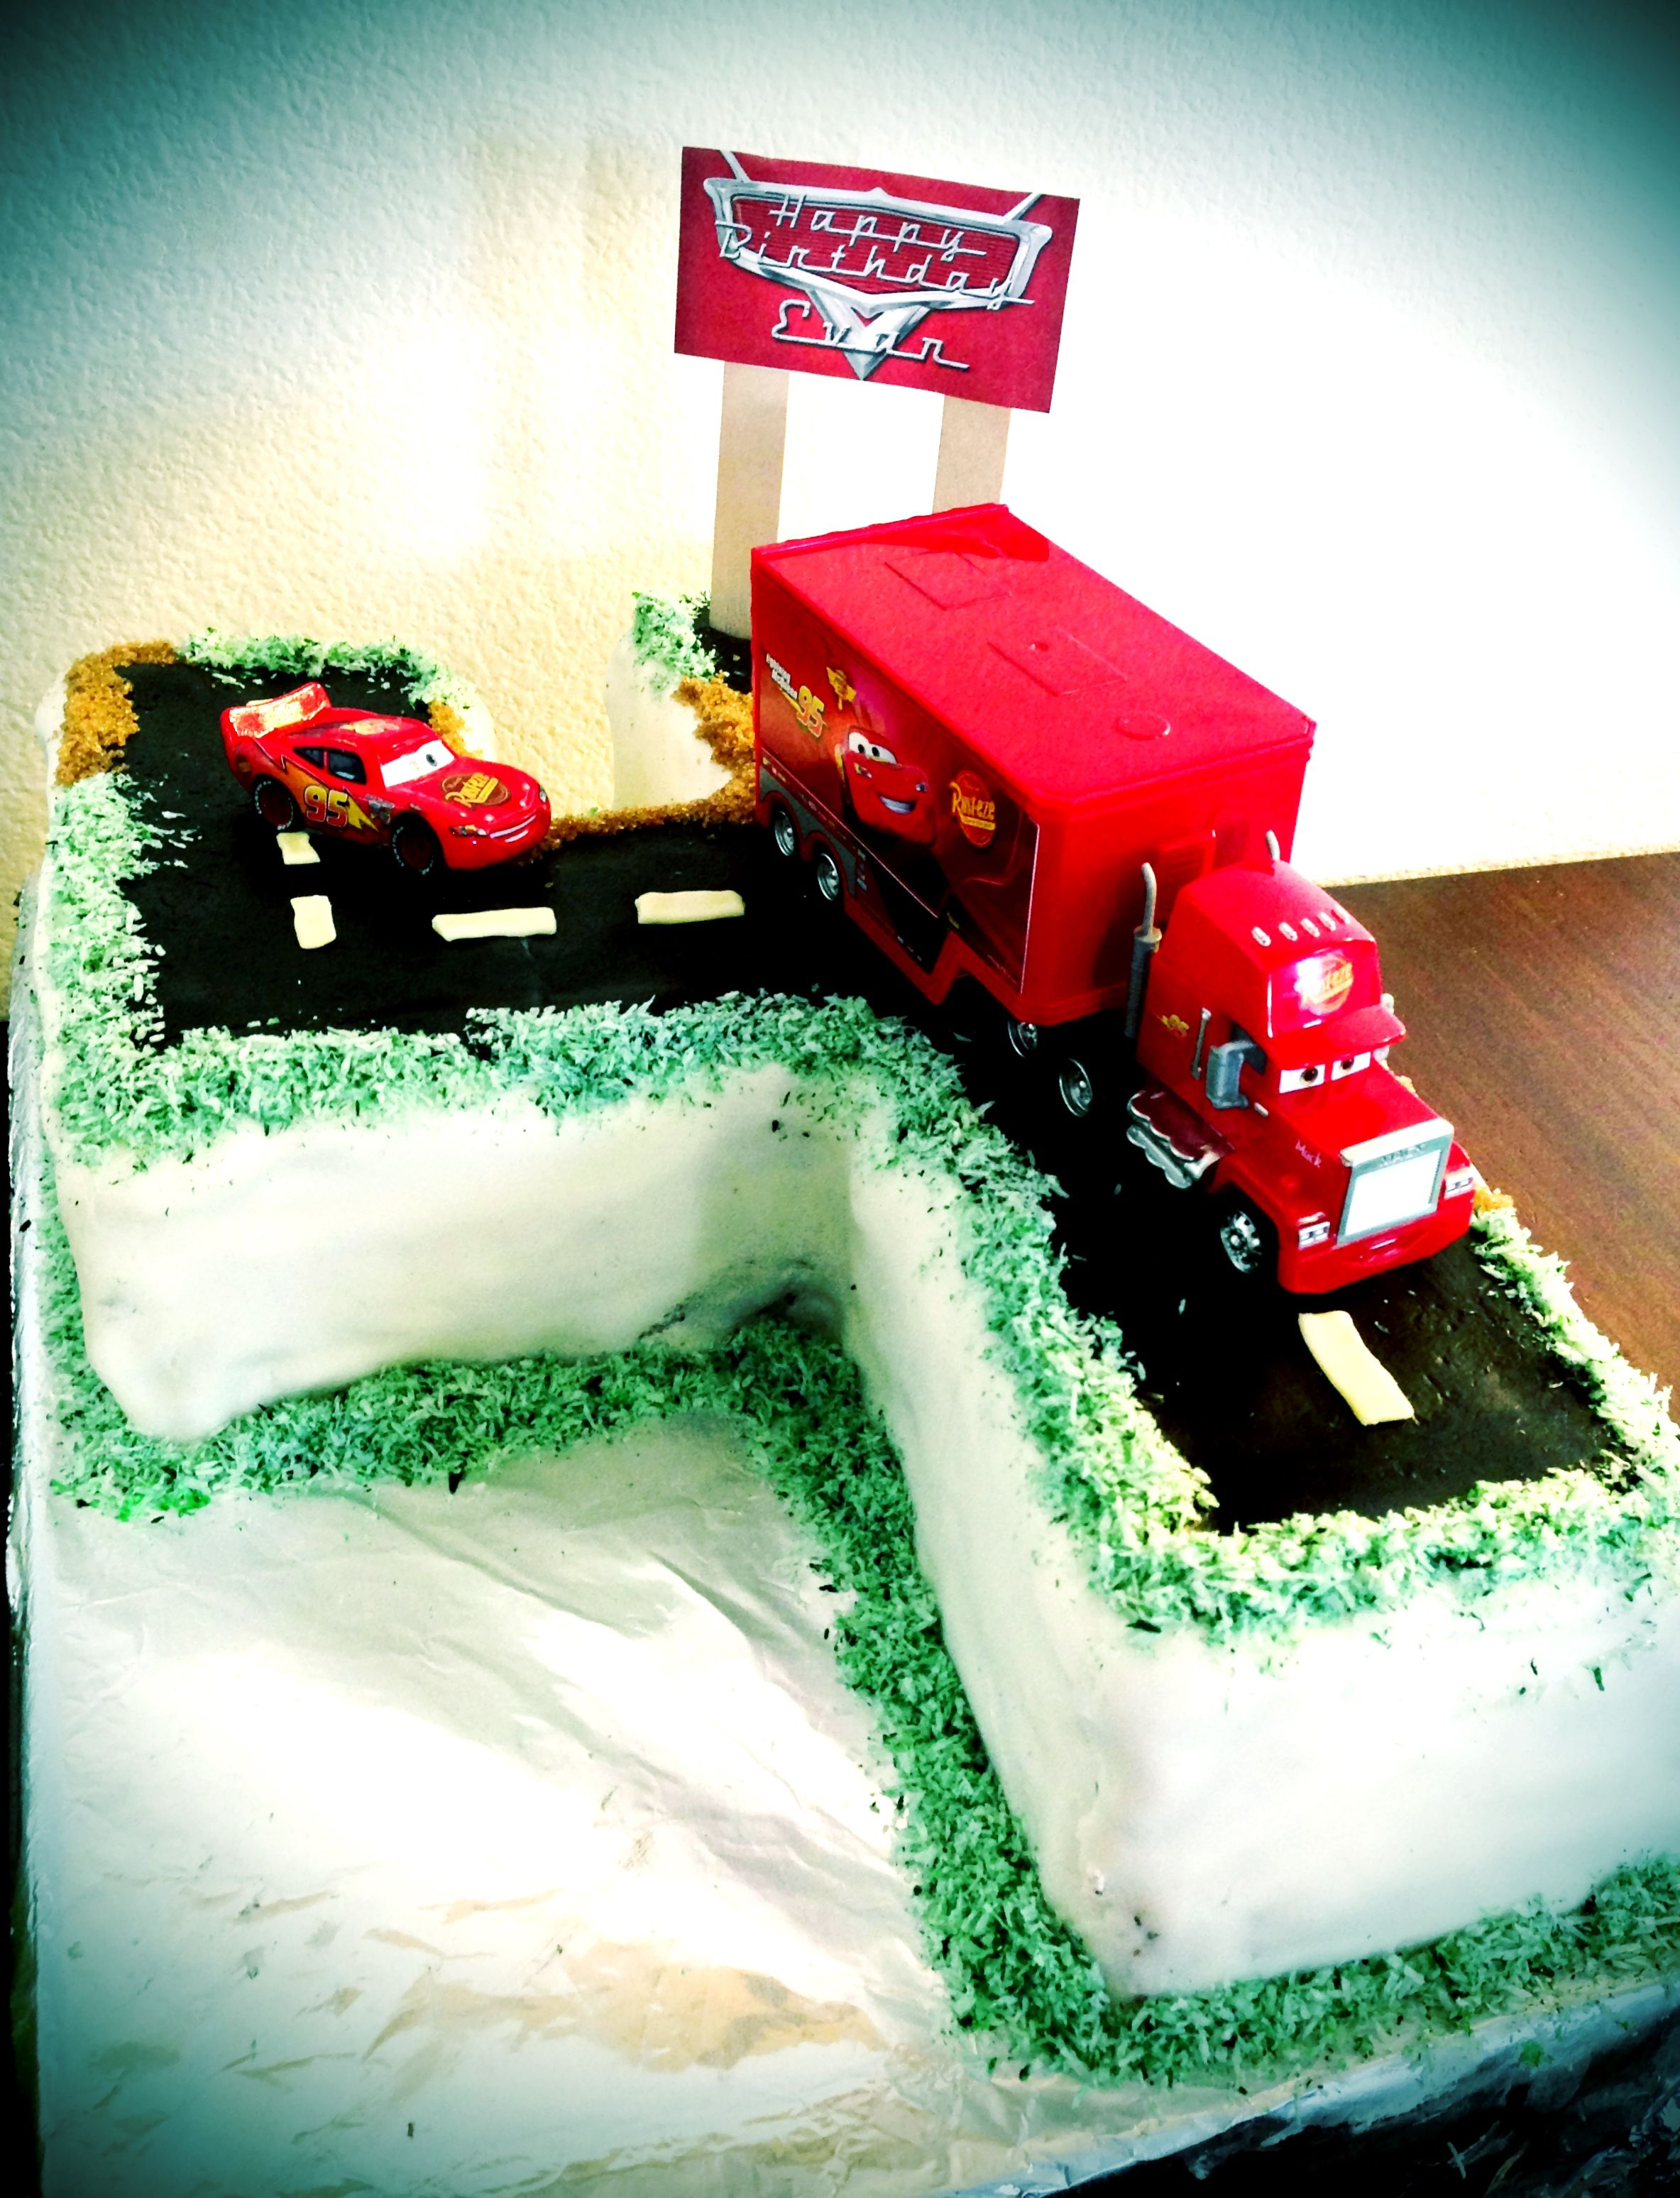 Gluten Free Cars Cake I Made For My 4 Year Old